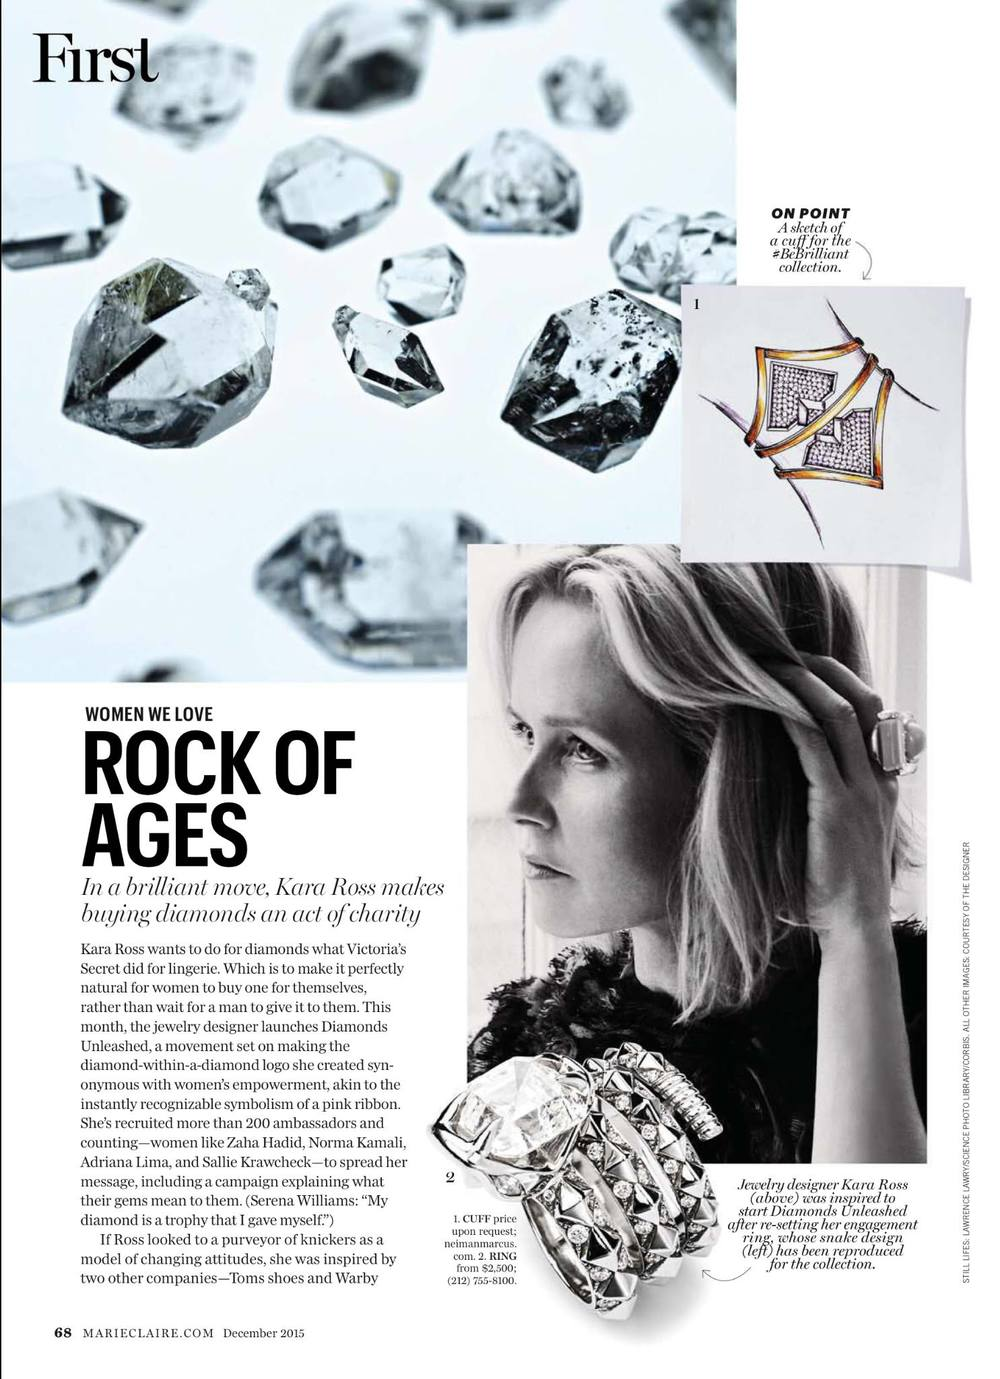 Diamonds Unleashed in Marie Claire